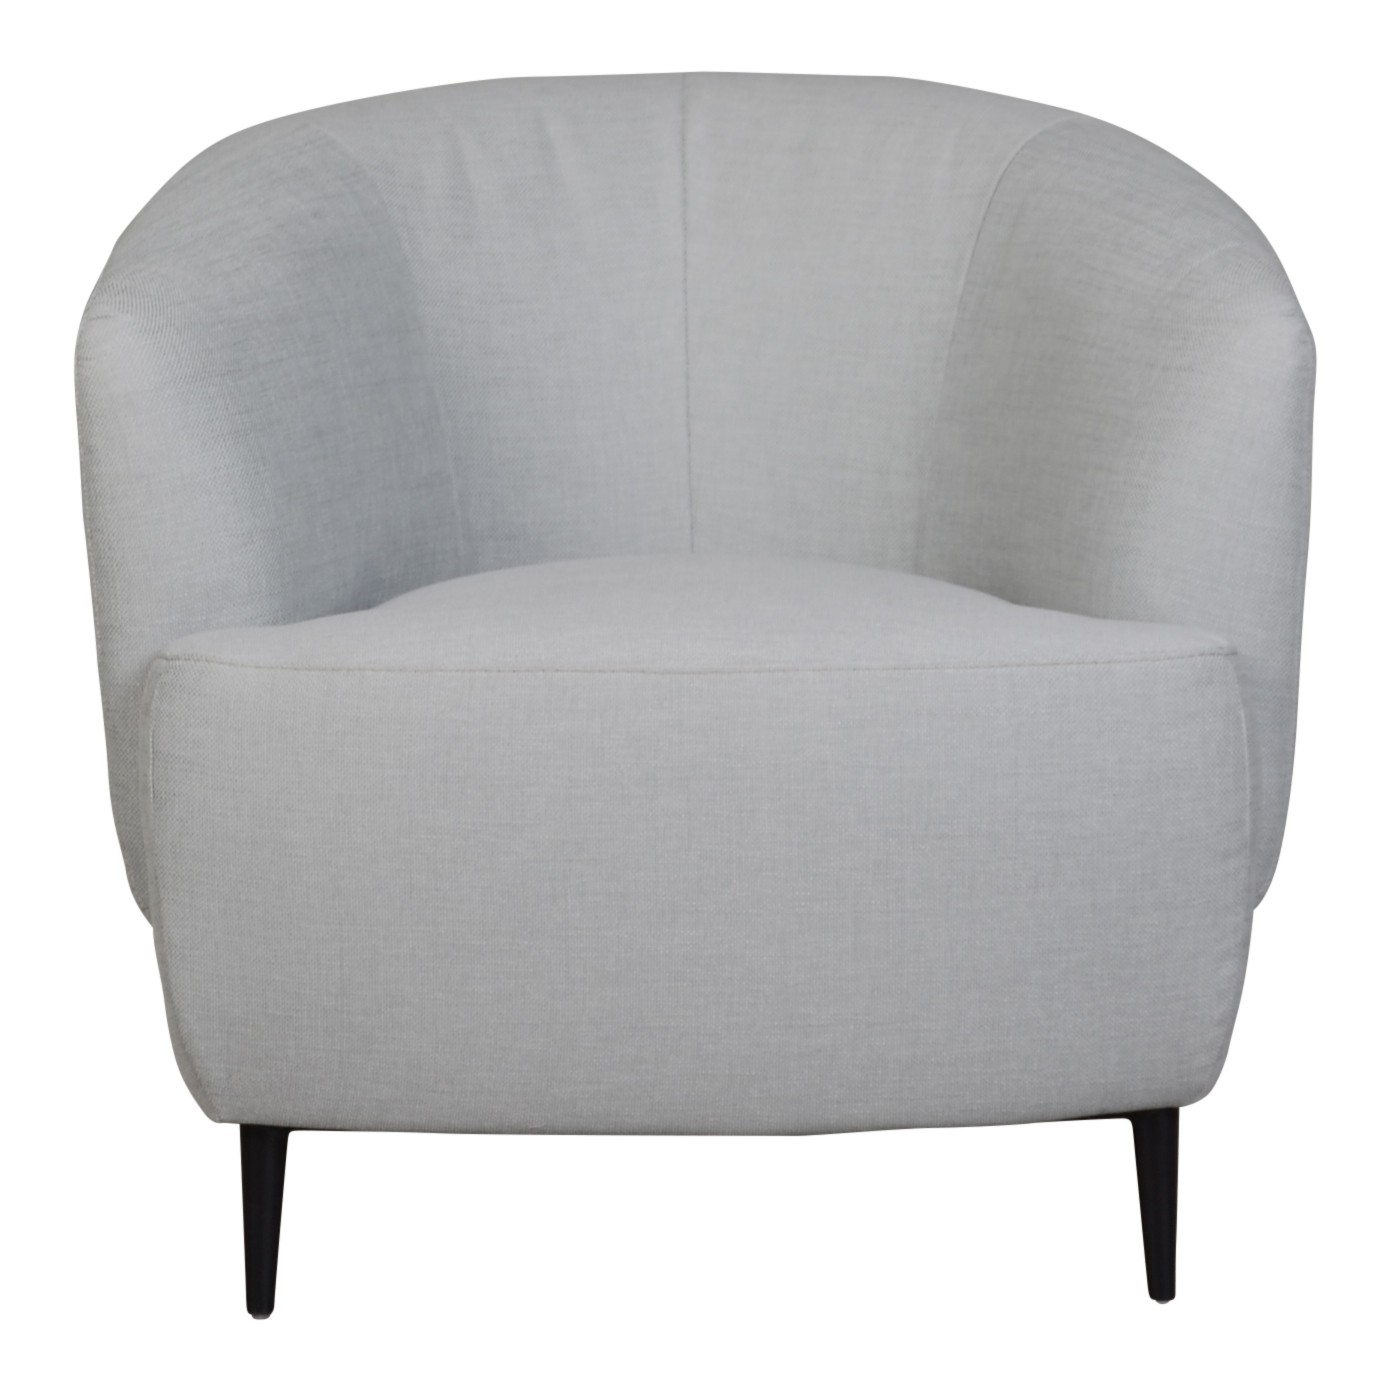 Fauteuil Olyck King Fiord